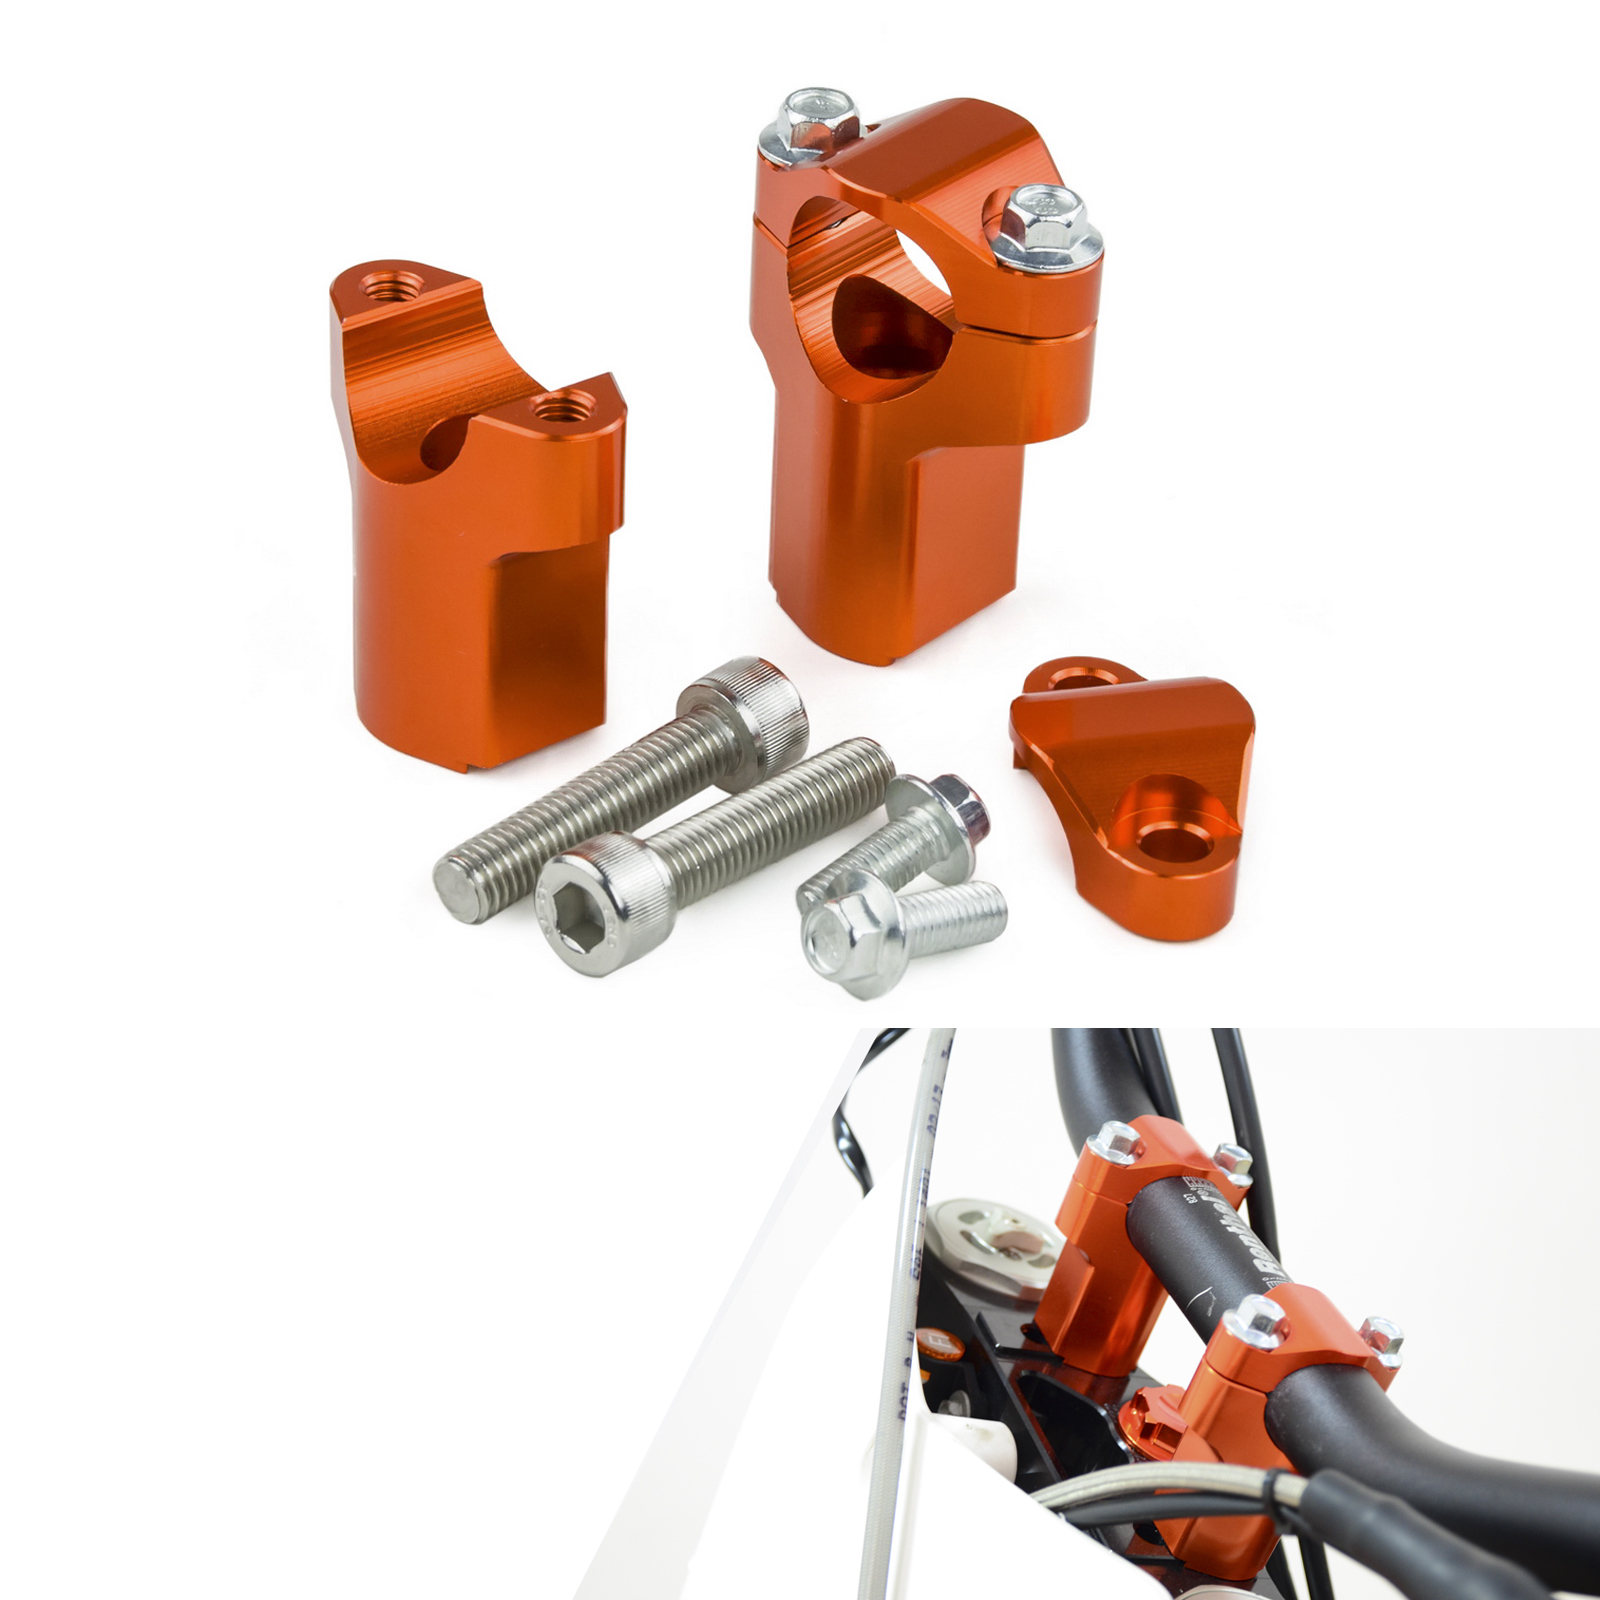 Motorcycle Handlebar Raiser 52mm Height Mounts Clamp For KTM 85 125 250 300 400 450 500 525 530 EXC SX SXF XCF XC FREERIDE motorcycle front rider seat leather cover for ktm 125 200 390 duke